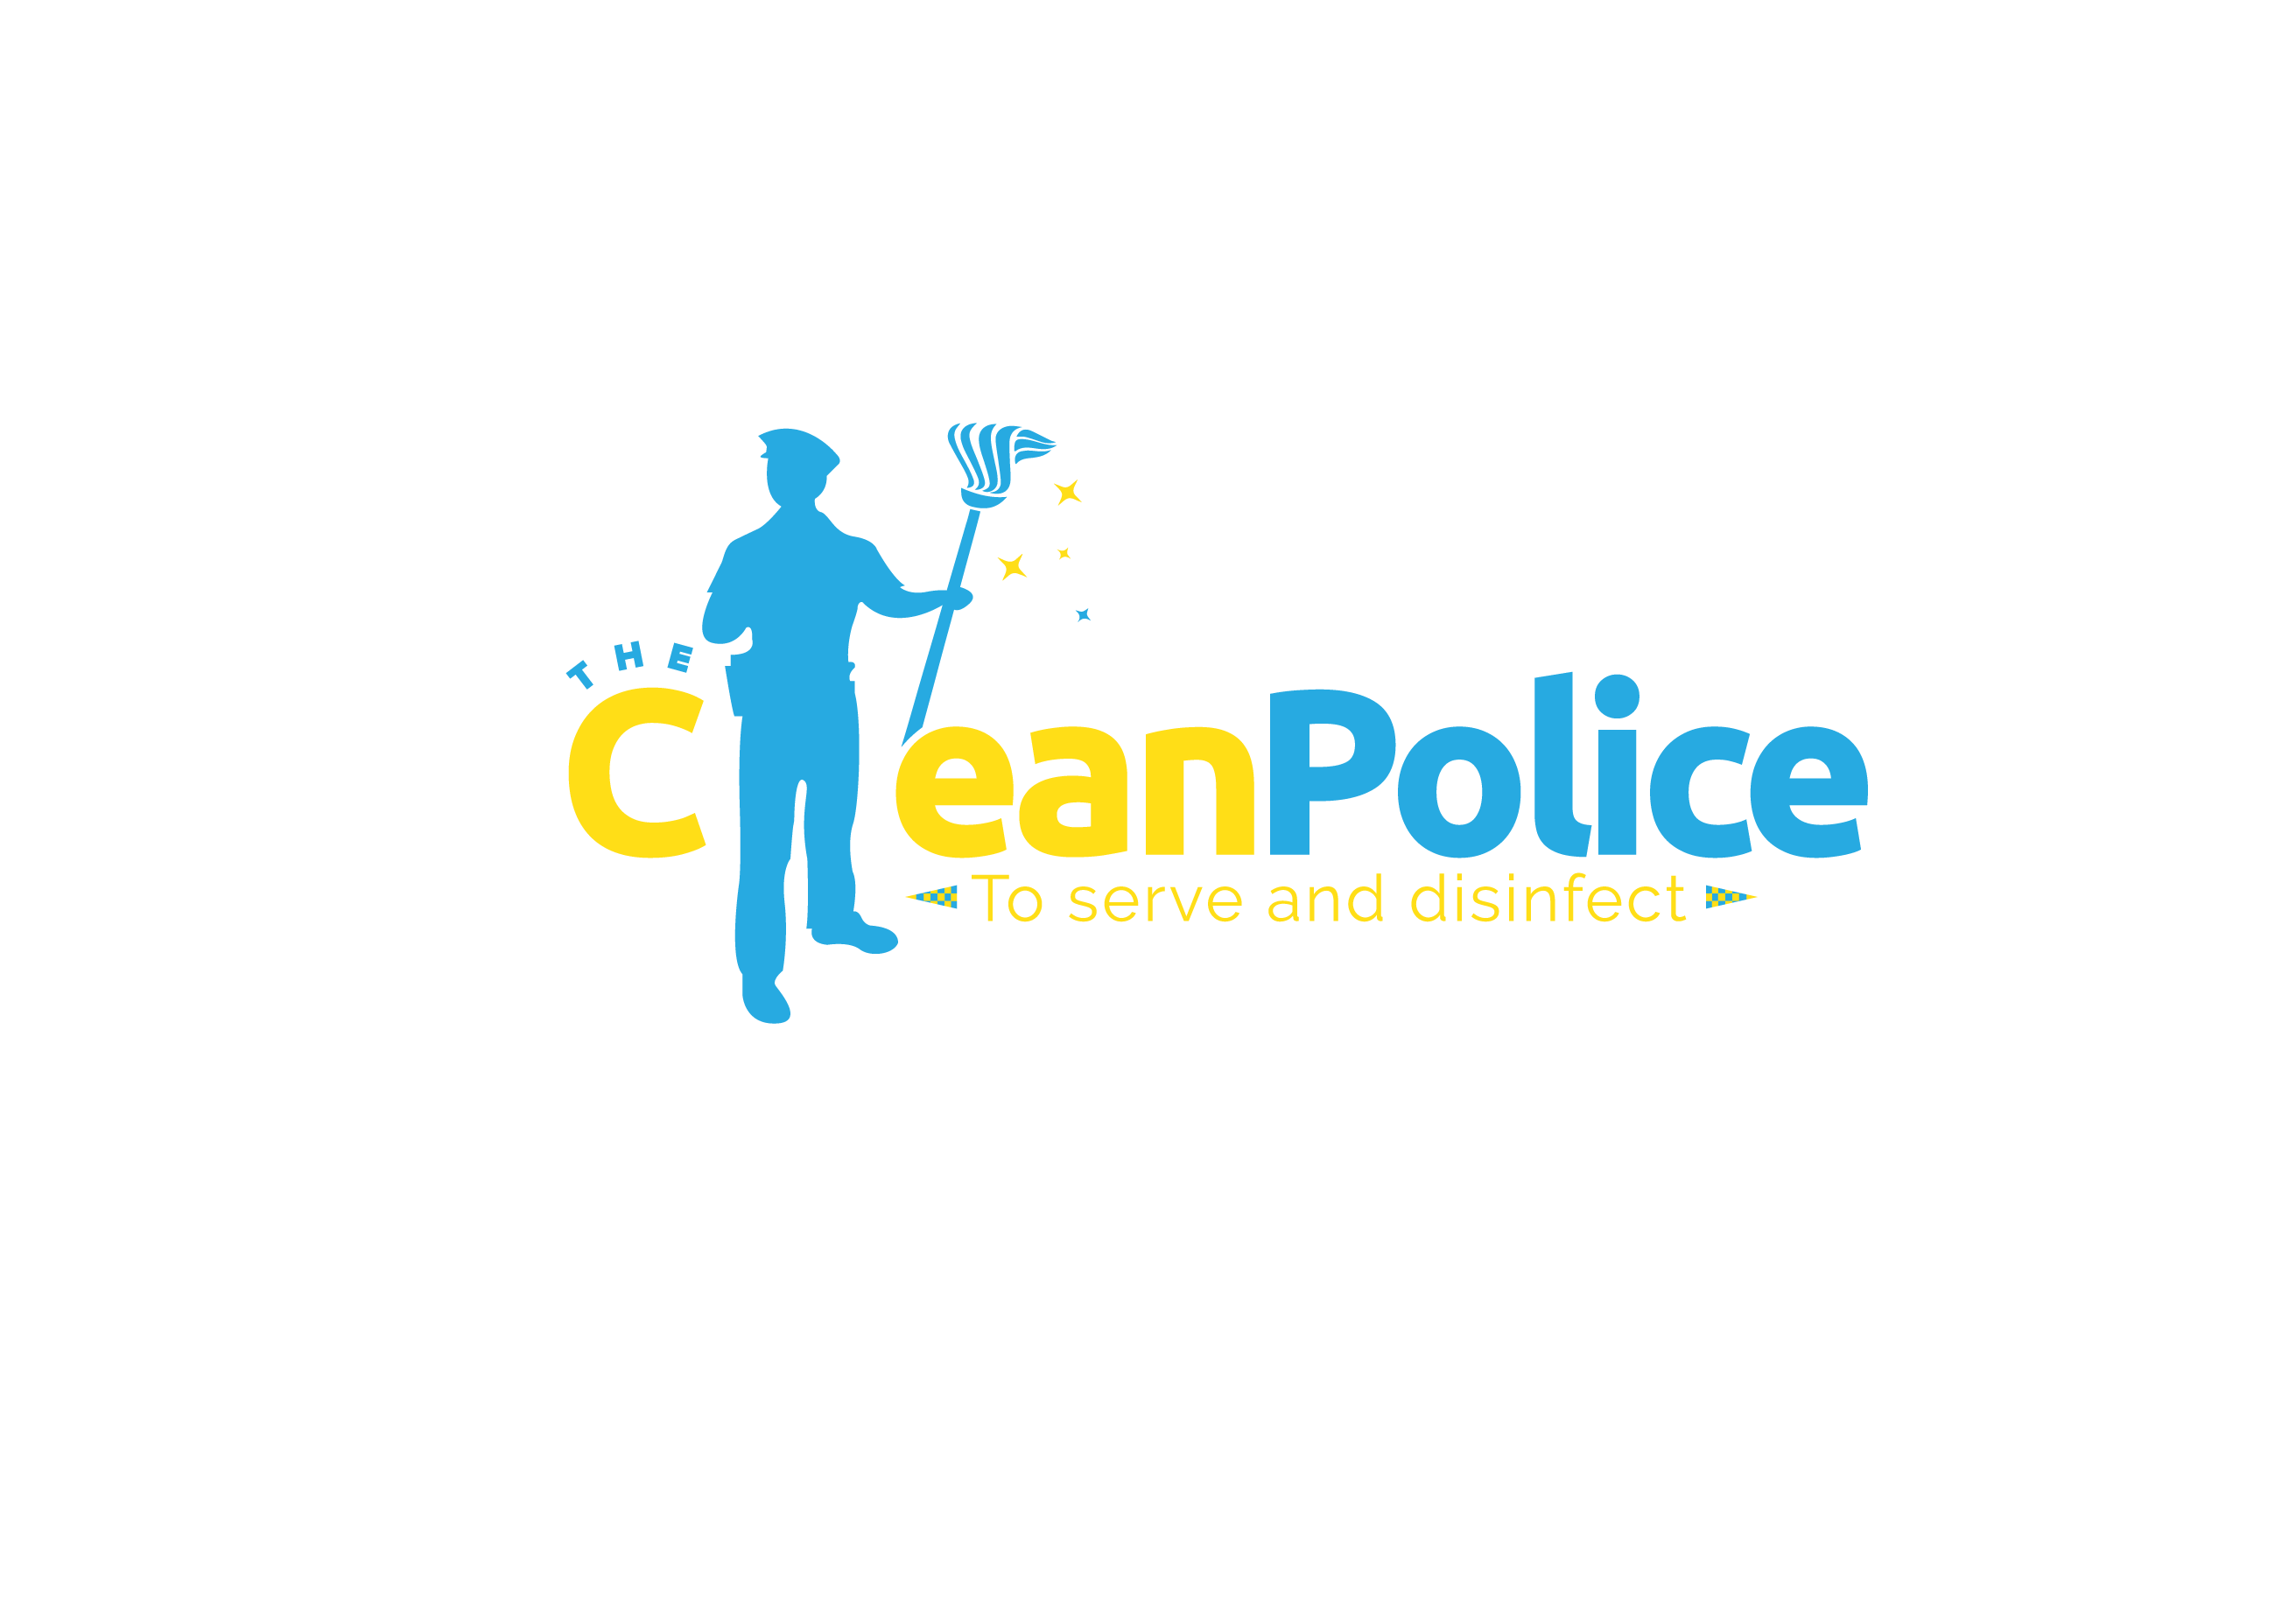 The Clean Police